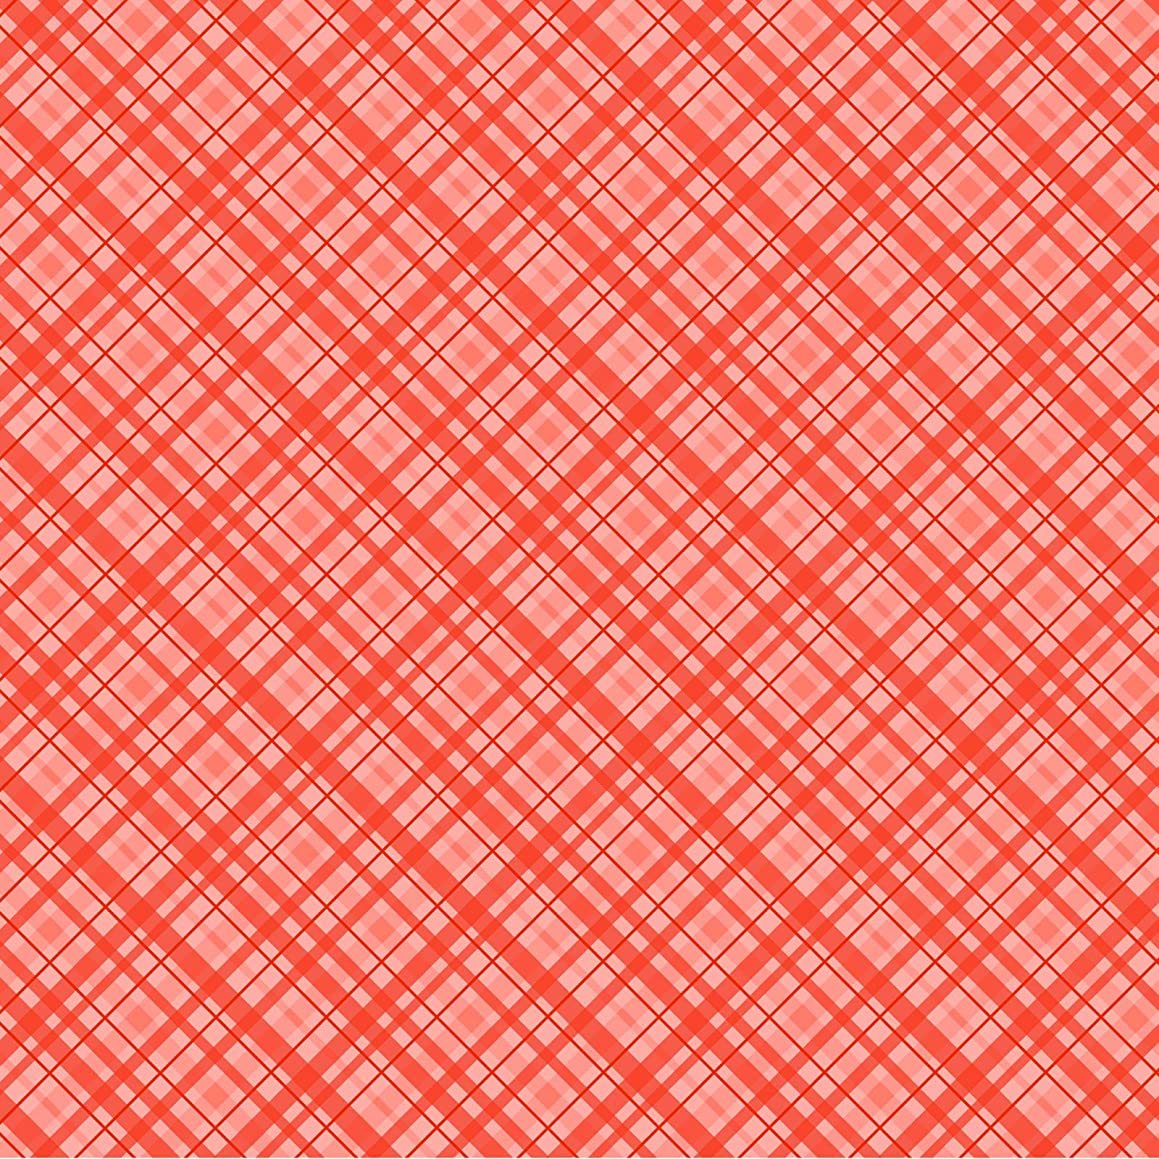 American Crafts Core'dinations 12 Pack of 12 x 12 Inch Patterned Paper Orange Plaid,